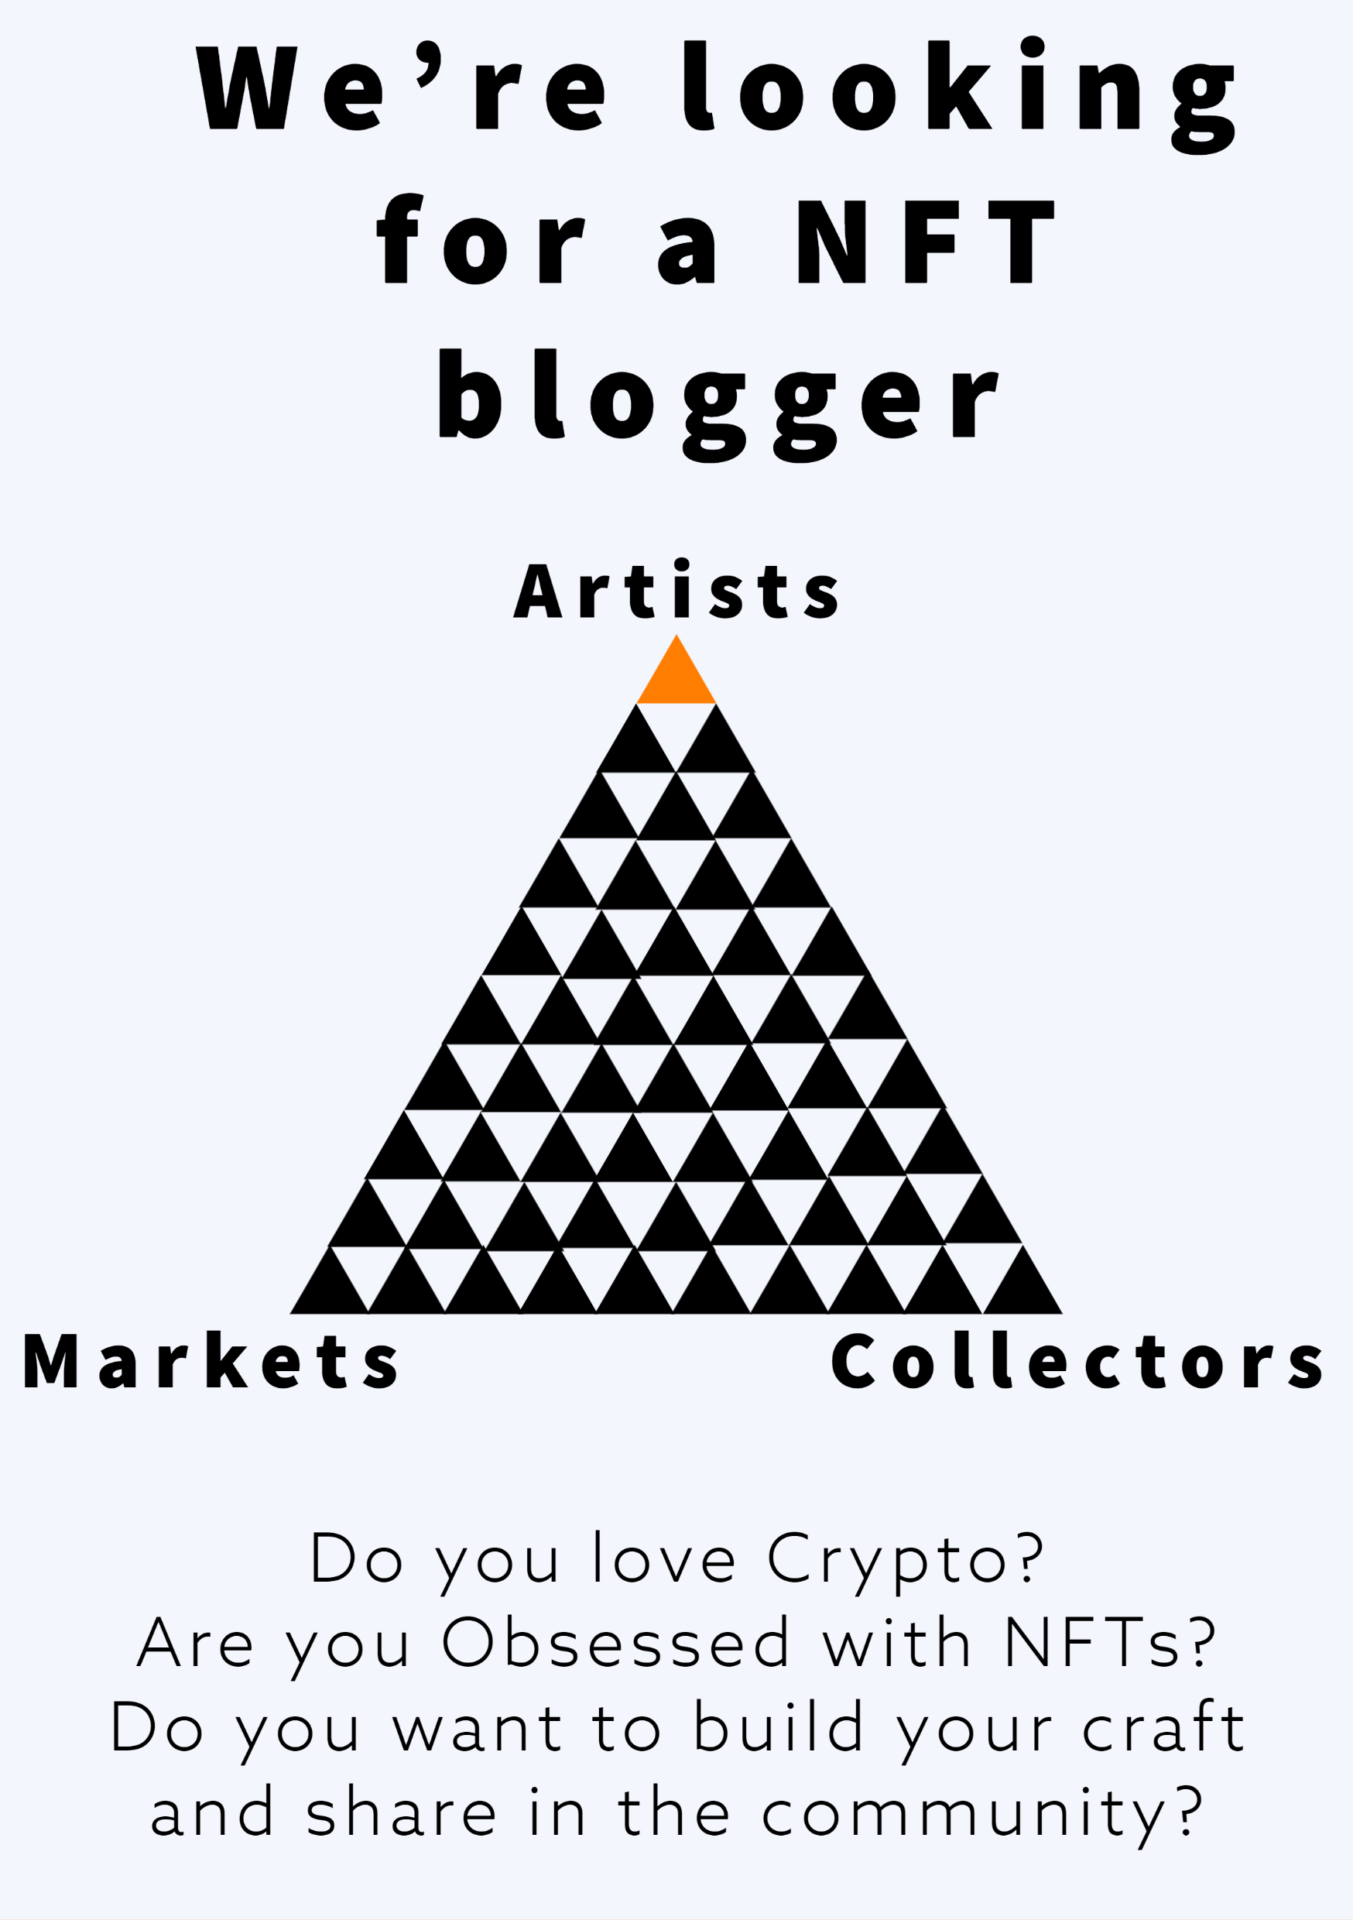 We are looking for a blogger